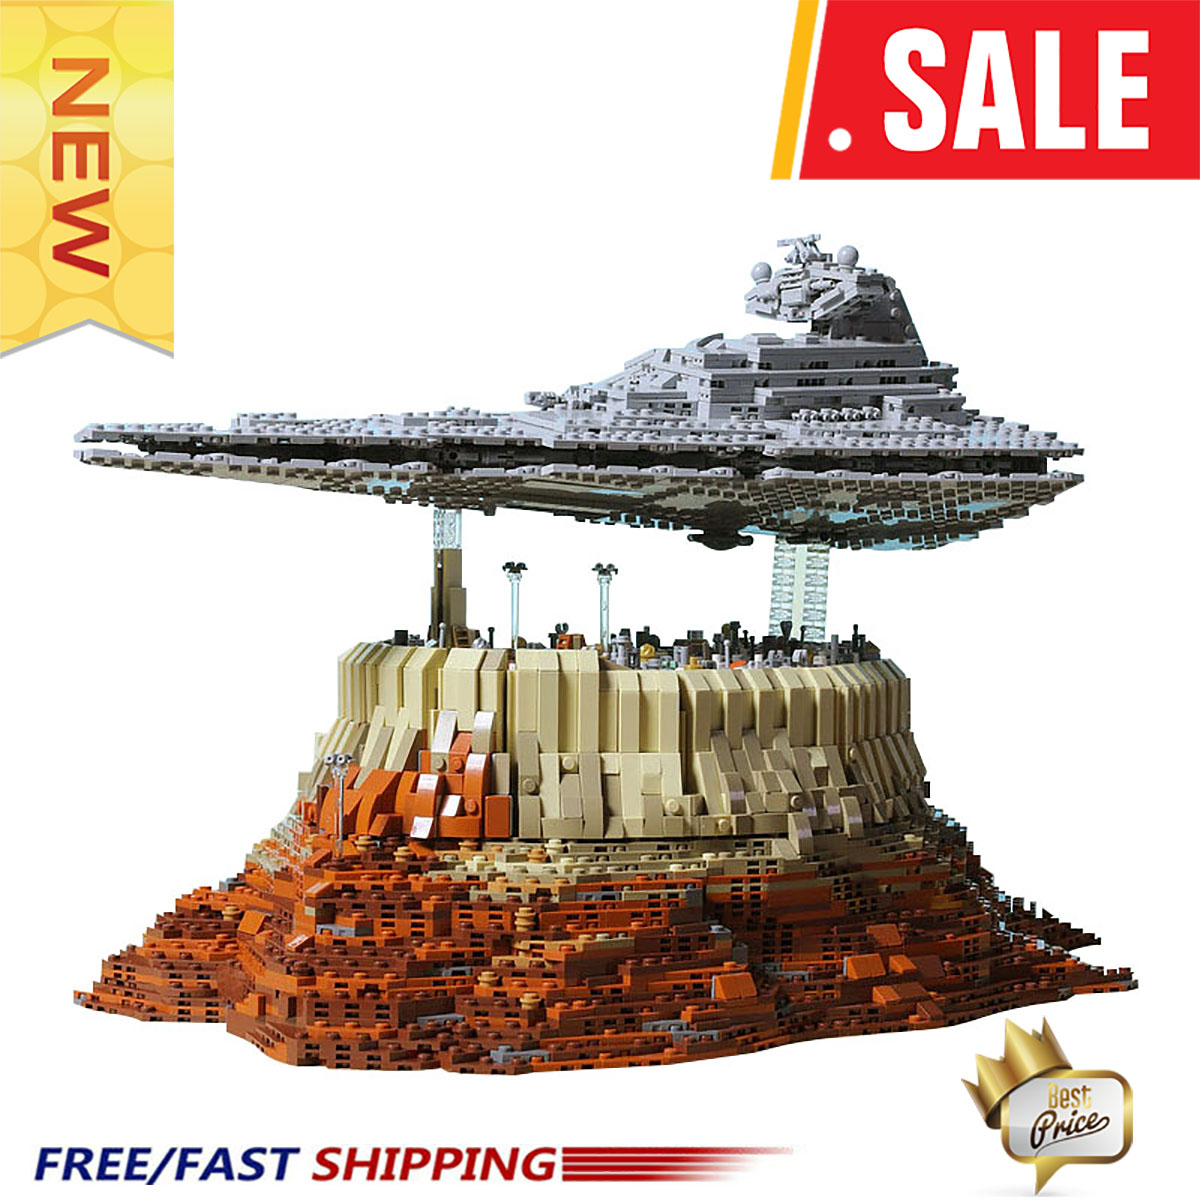 New-Ship-Wars-MOC-18916-The-Empire-Over-Jedha-City-By-Onecase-Star-Cruise-Blocks